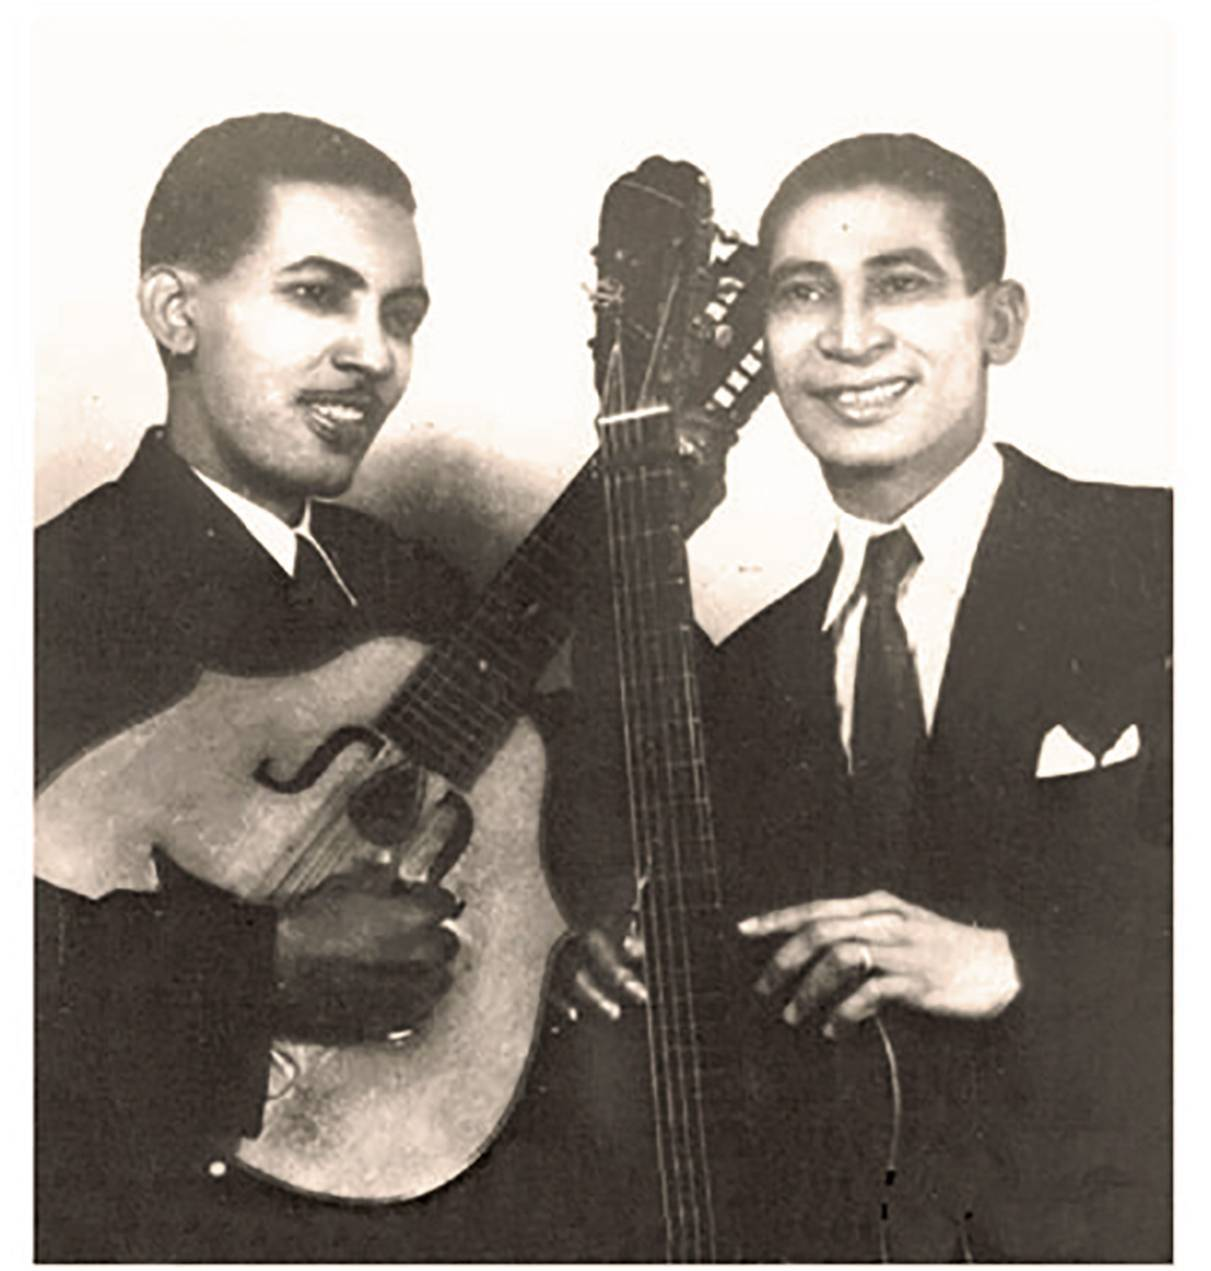 Francisco Repilado and Lorenzo Hierrezuelo, members of the legendary duo Los Compadres. Photo: Smoke Graphic.